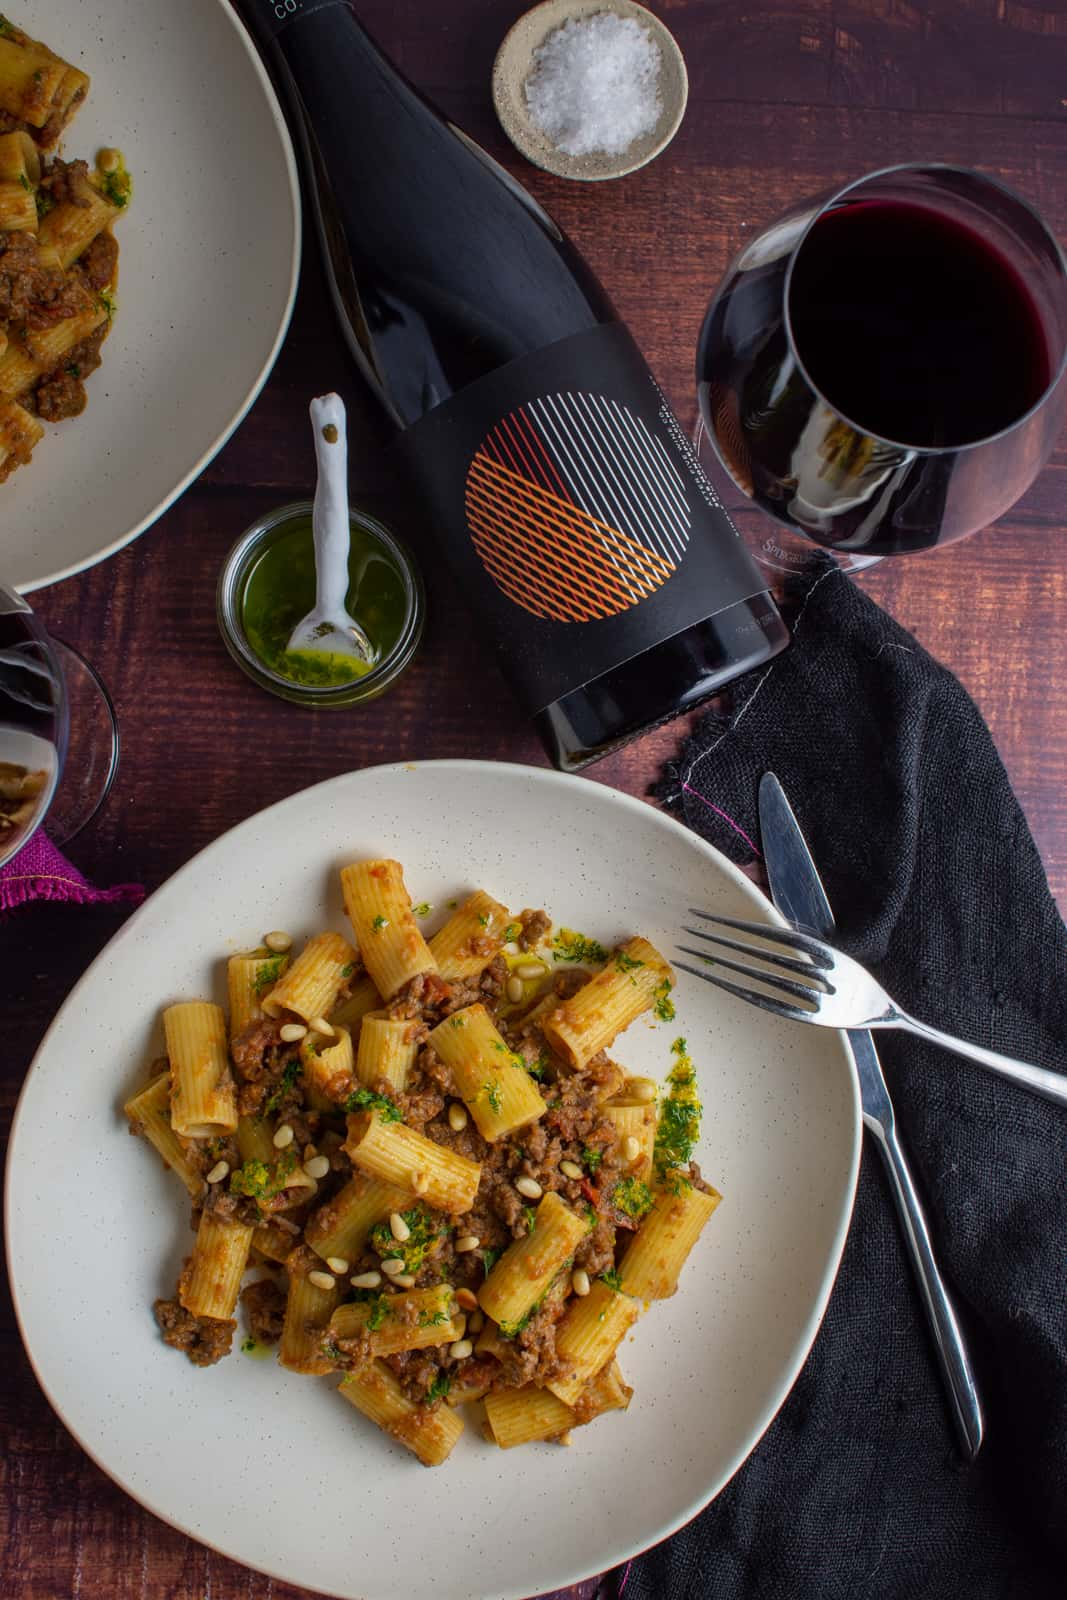 bowl of la,b ragu pasta on a table with black napkin and red wine next to it